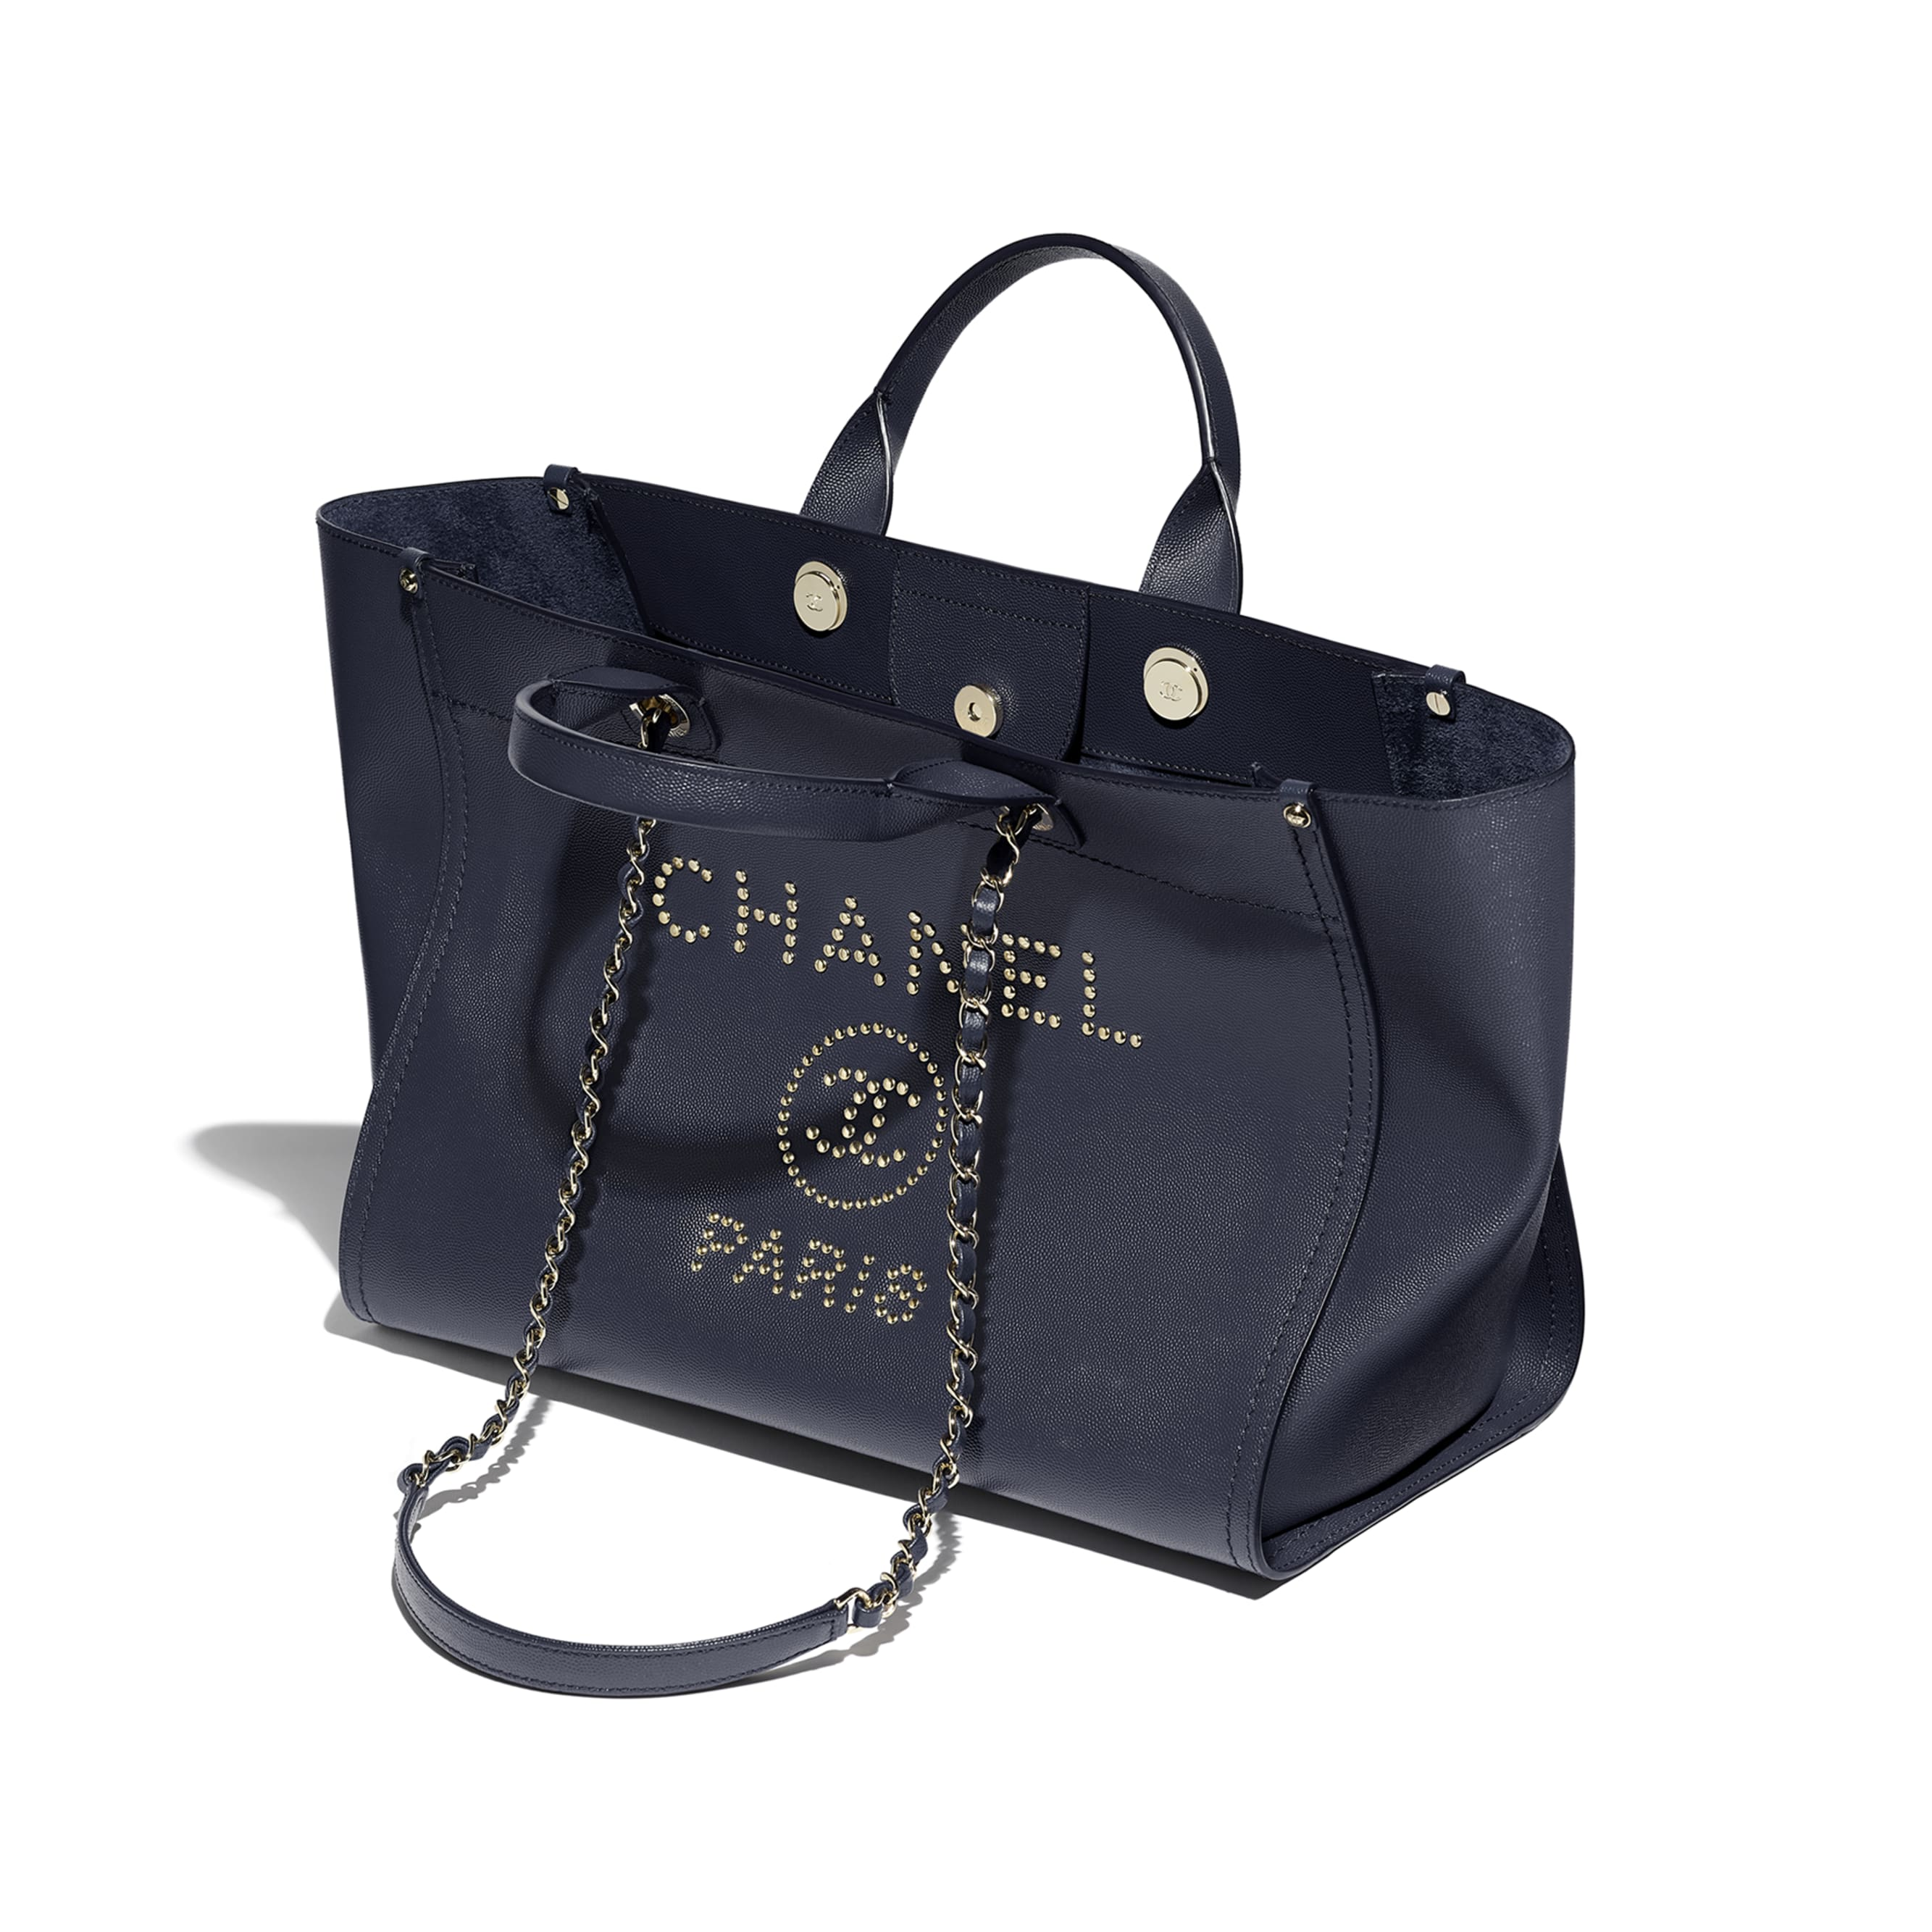 Large Shopping Bag - Navy Blue - Grained Calfskin & Gold-Tone Metal - CHANEL - Other view - see standard sized version